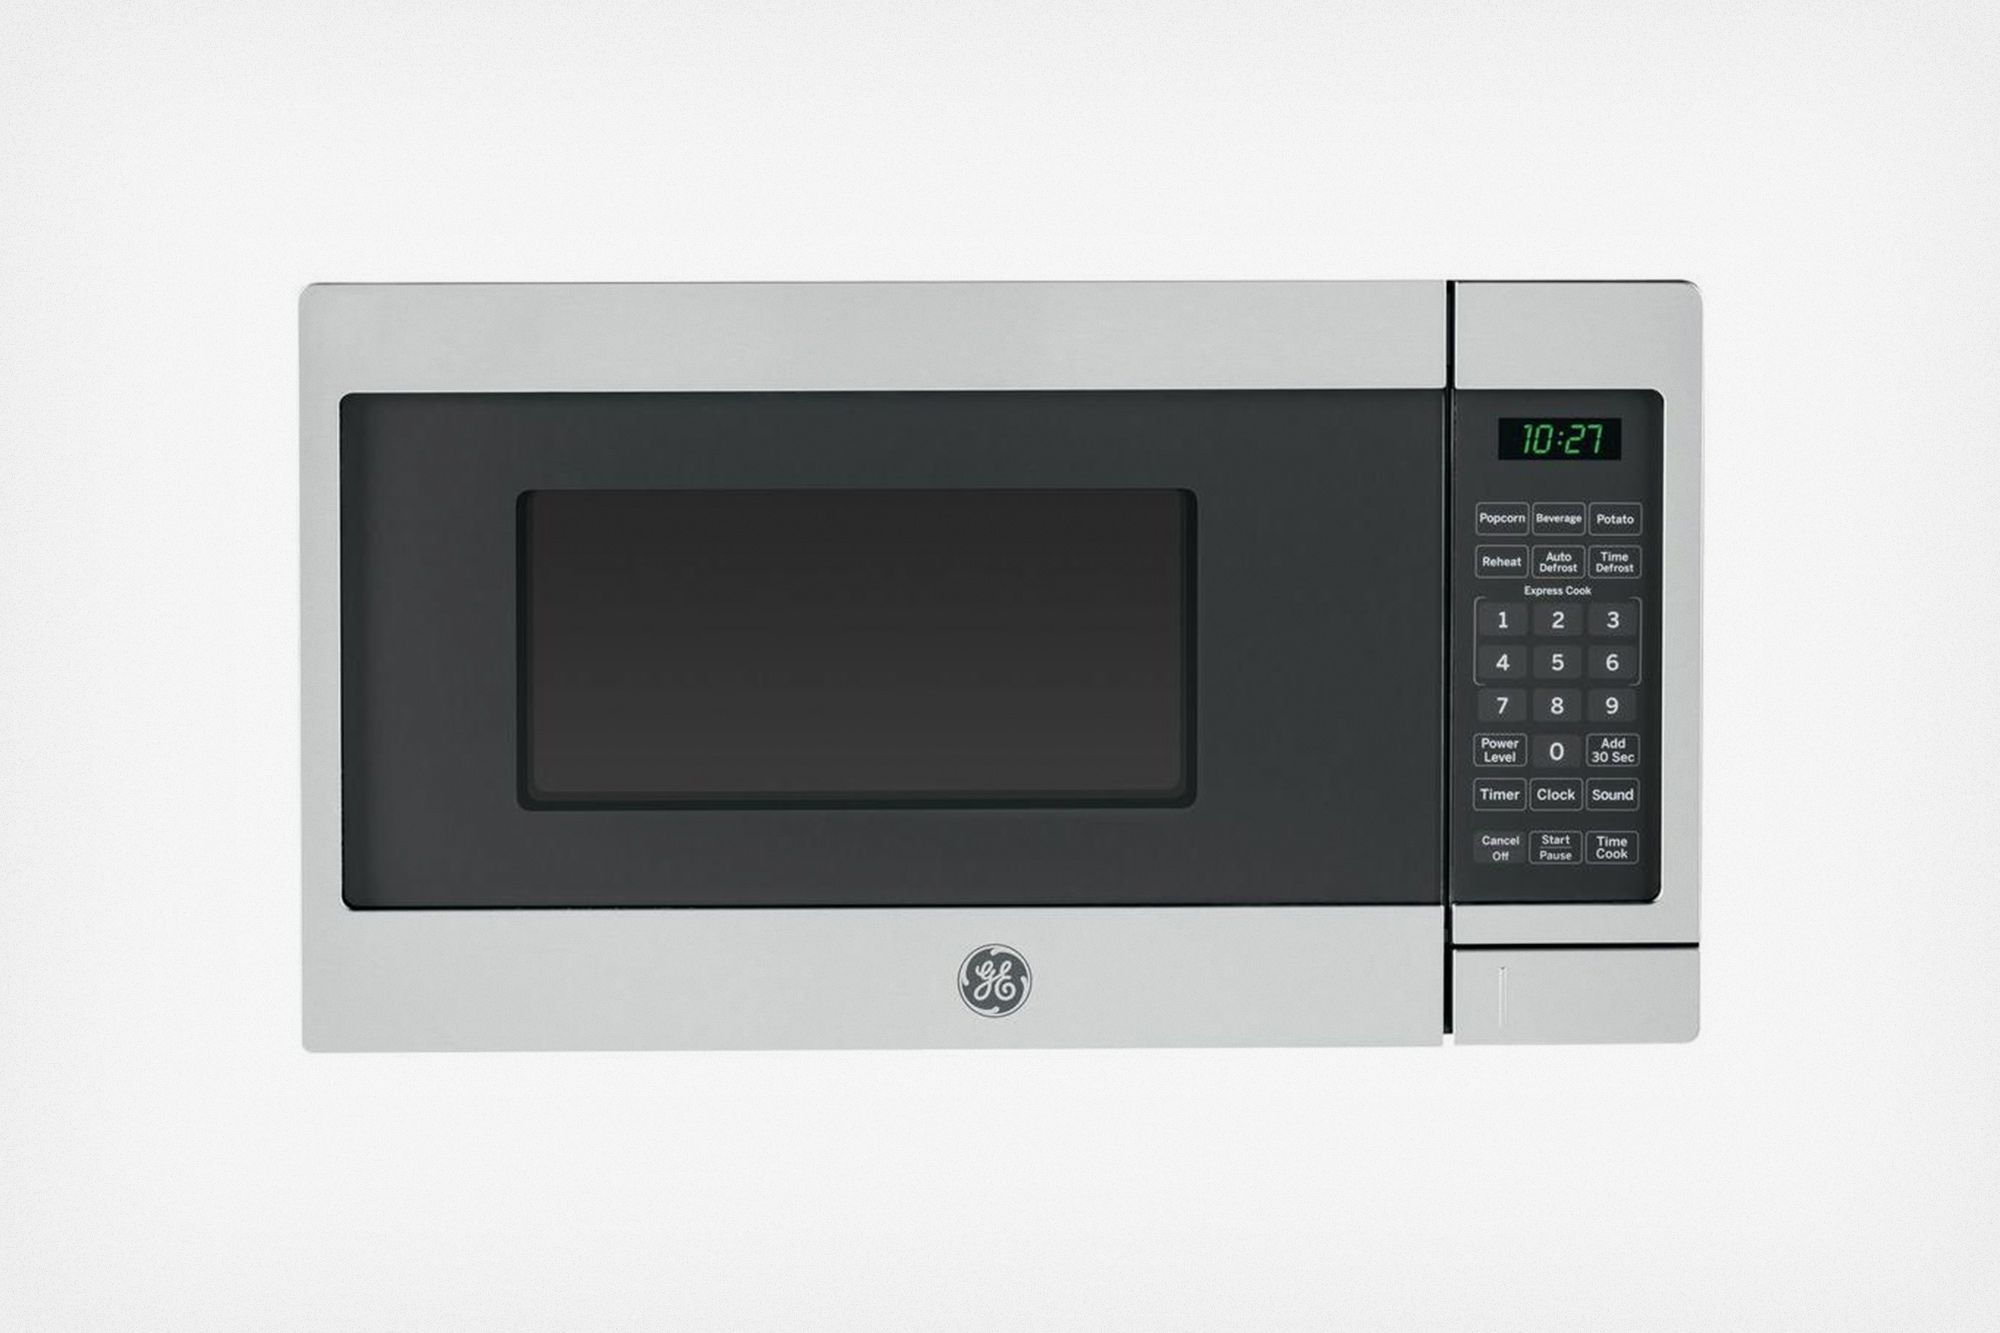 Countertop Microwave 13 Deep : smaller option?at 0.7 cubic feet?and a lower price than our main ...